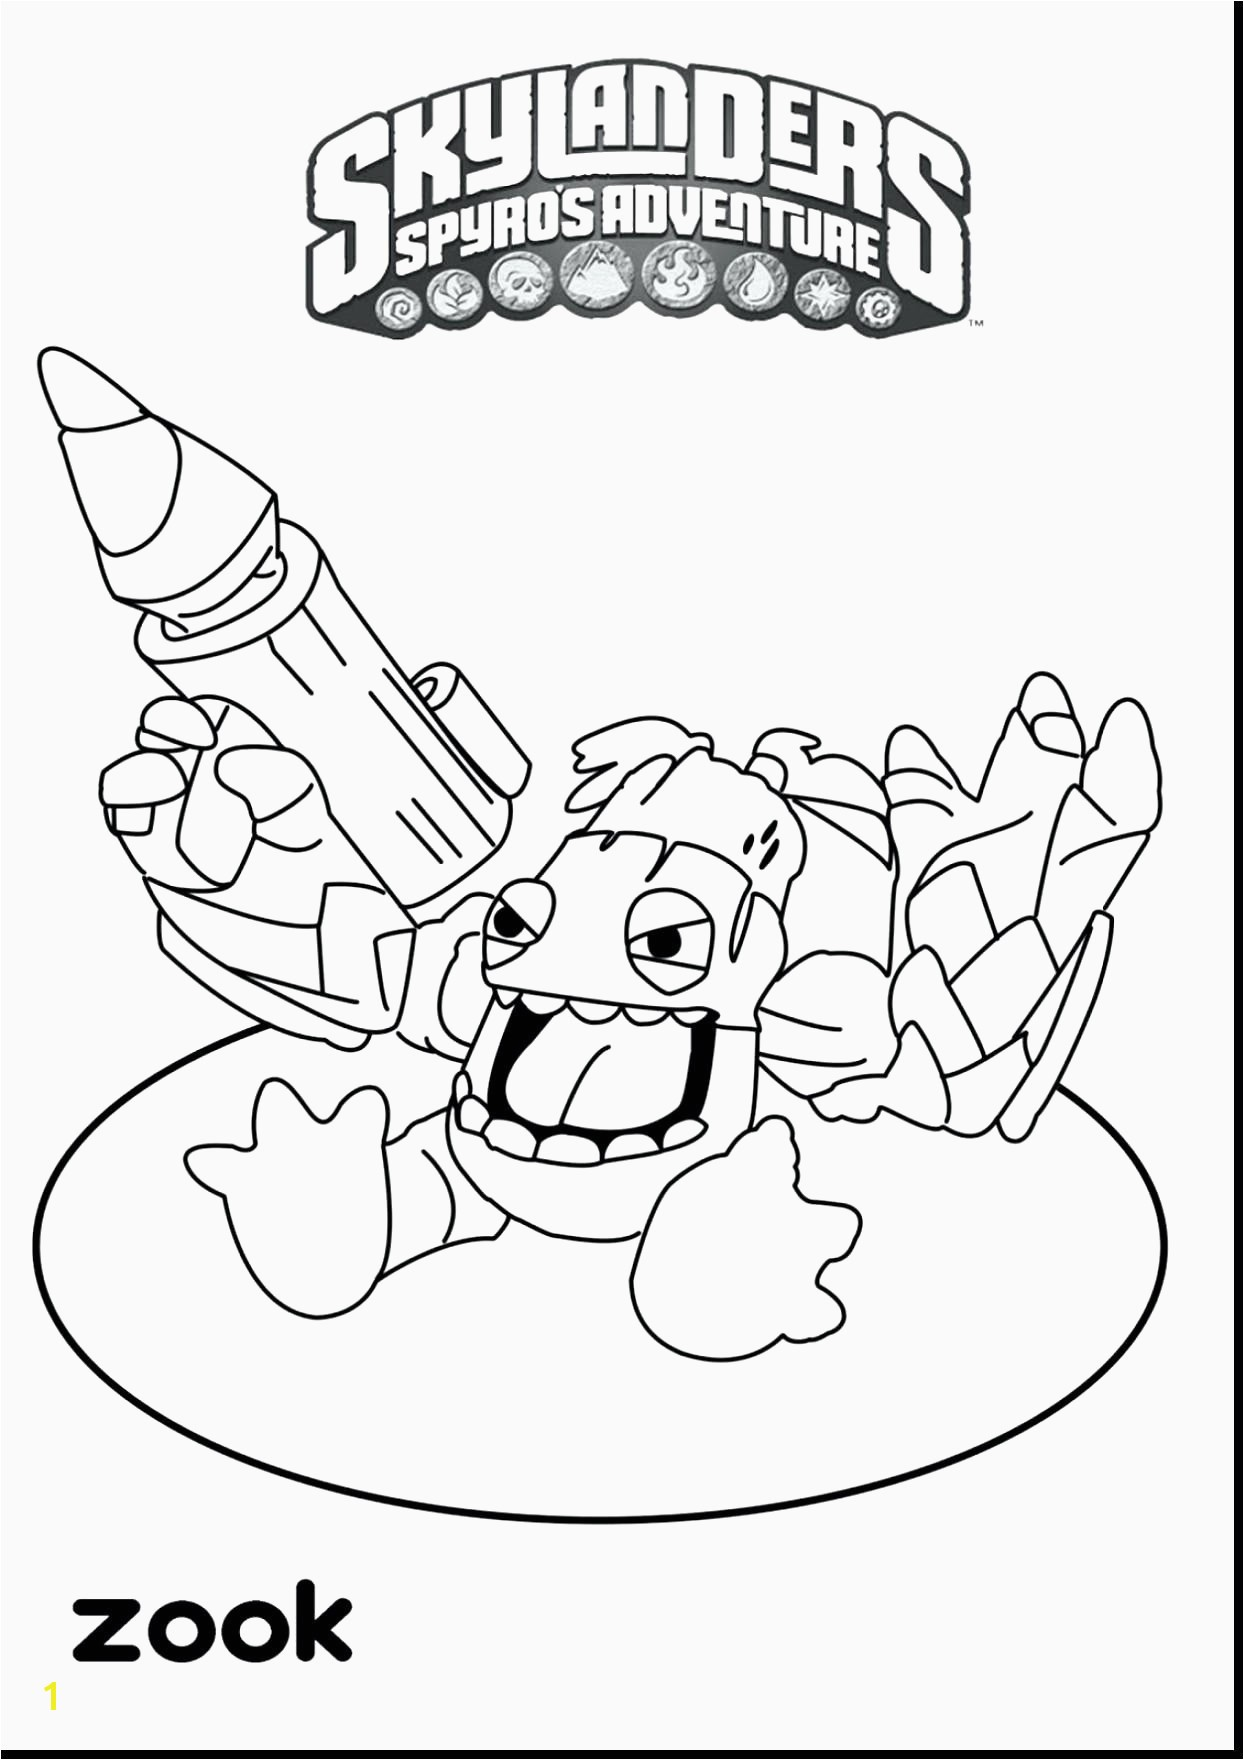 Autumn Coloring Pages New Preschool Coloring Pages Fresh Fall Coloring Pages 0d Page for Kids